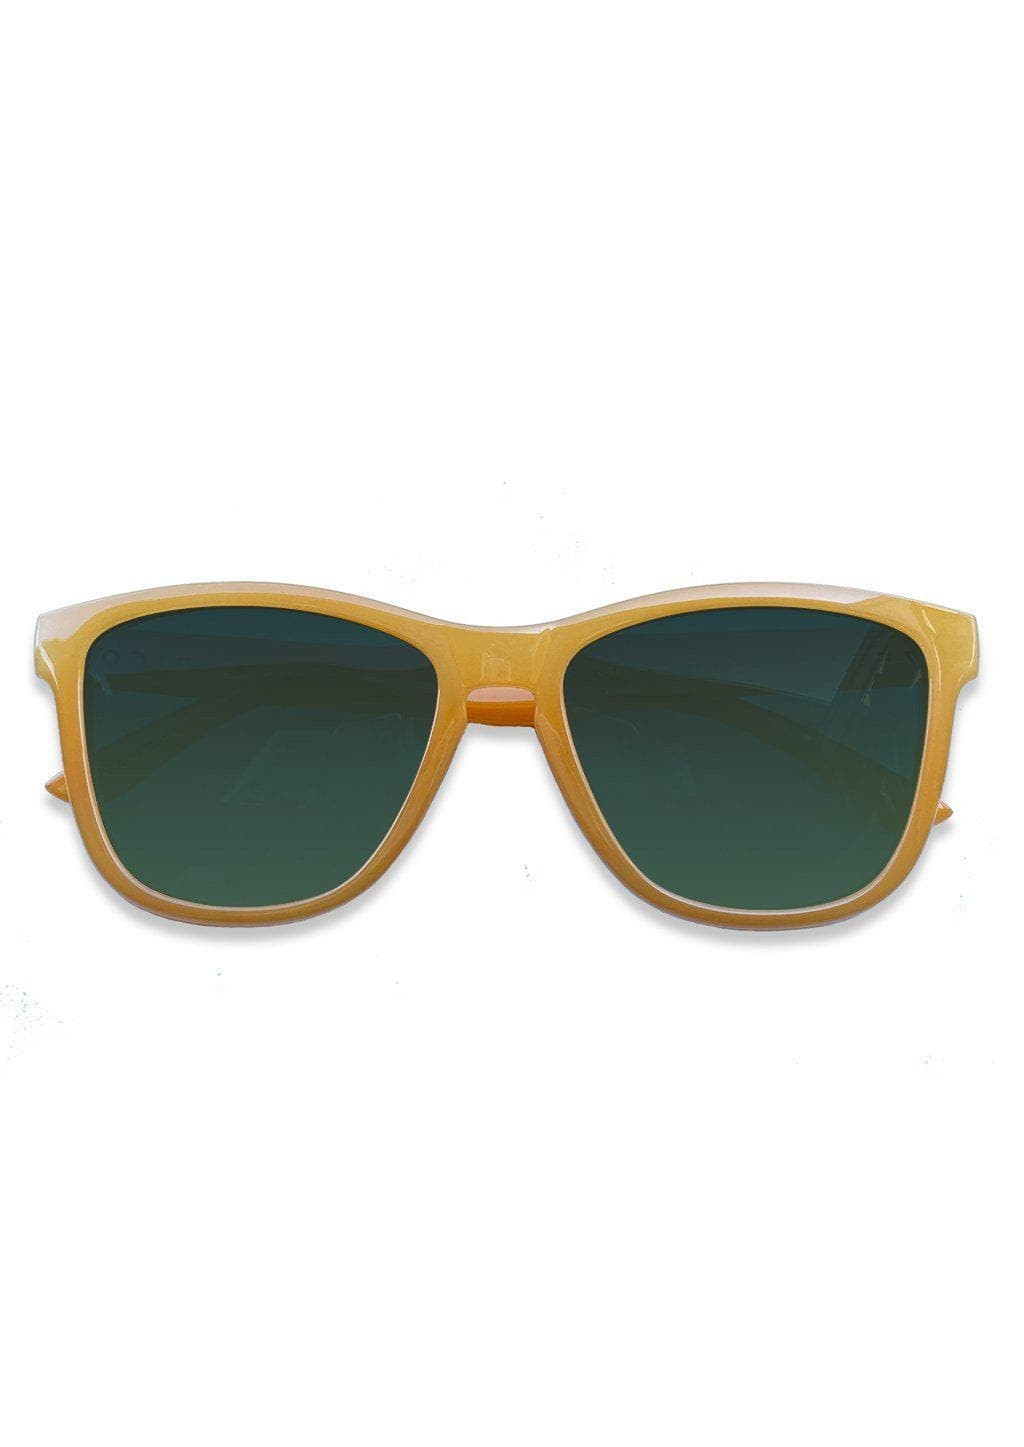 Our Mood V2 is an improved version of our last wayfarers. Plastic body for great quality and durabilty. This is Lemon with yellow frame and green lenses. From the front.